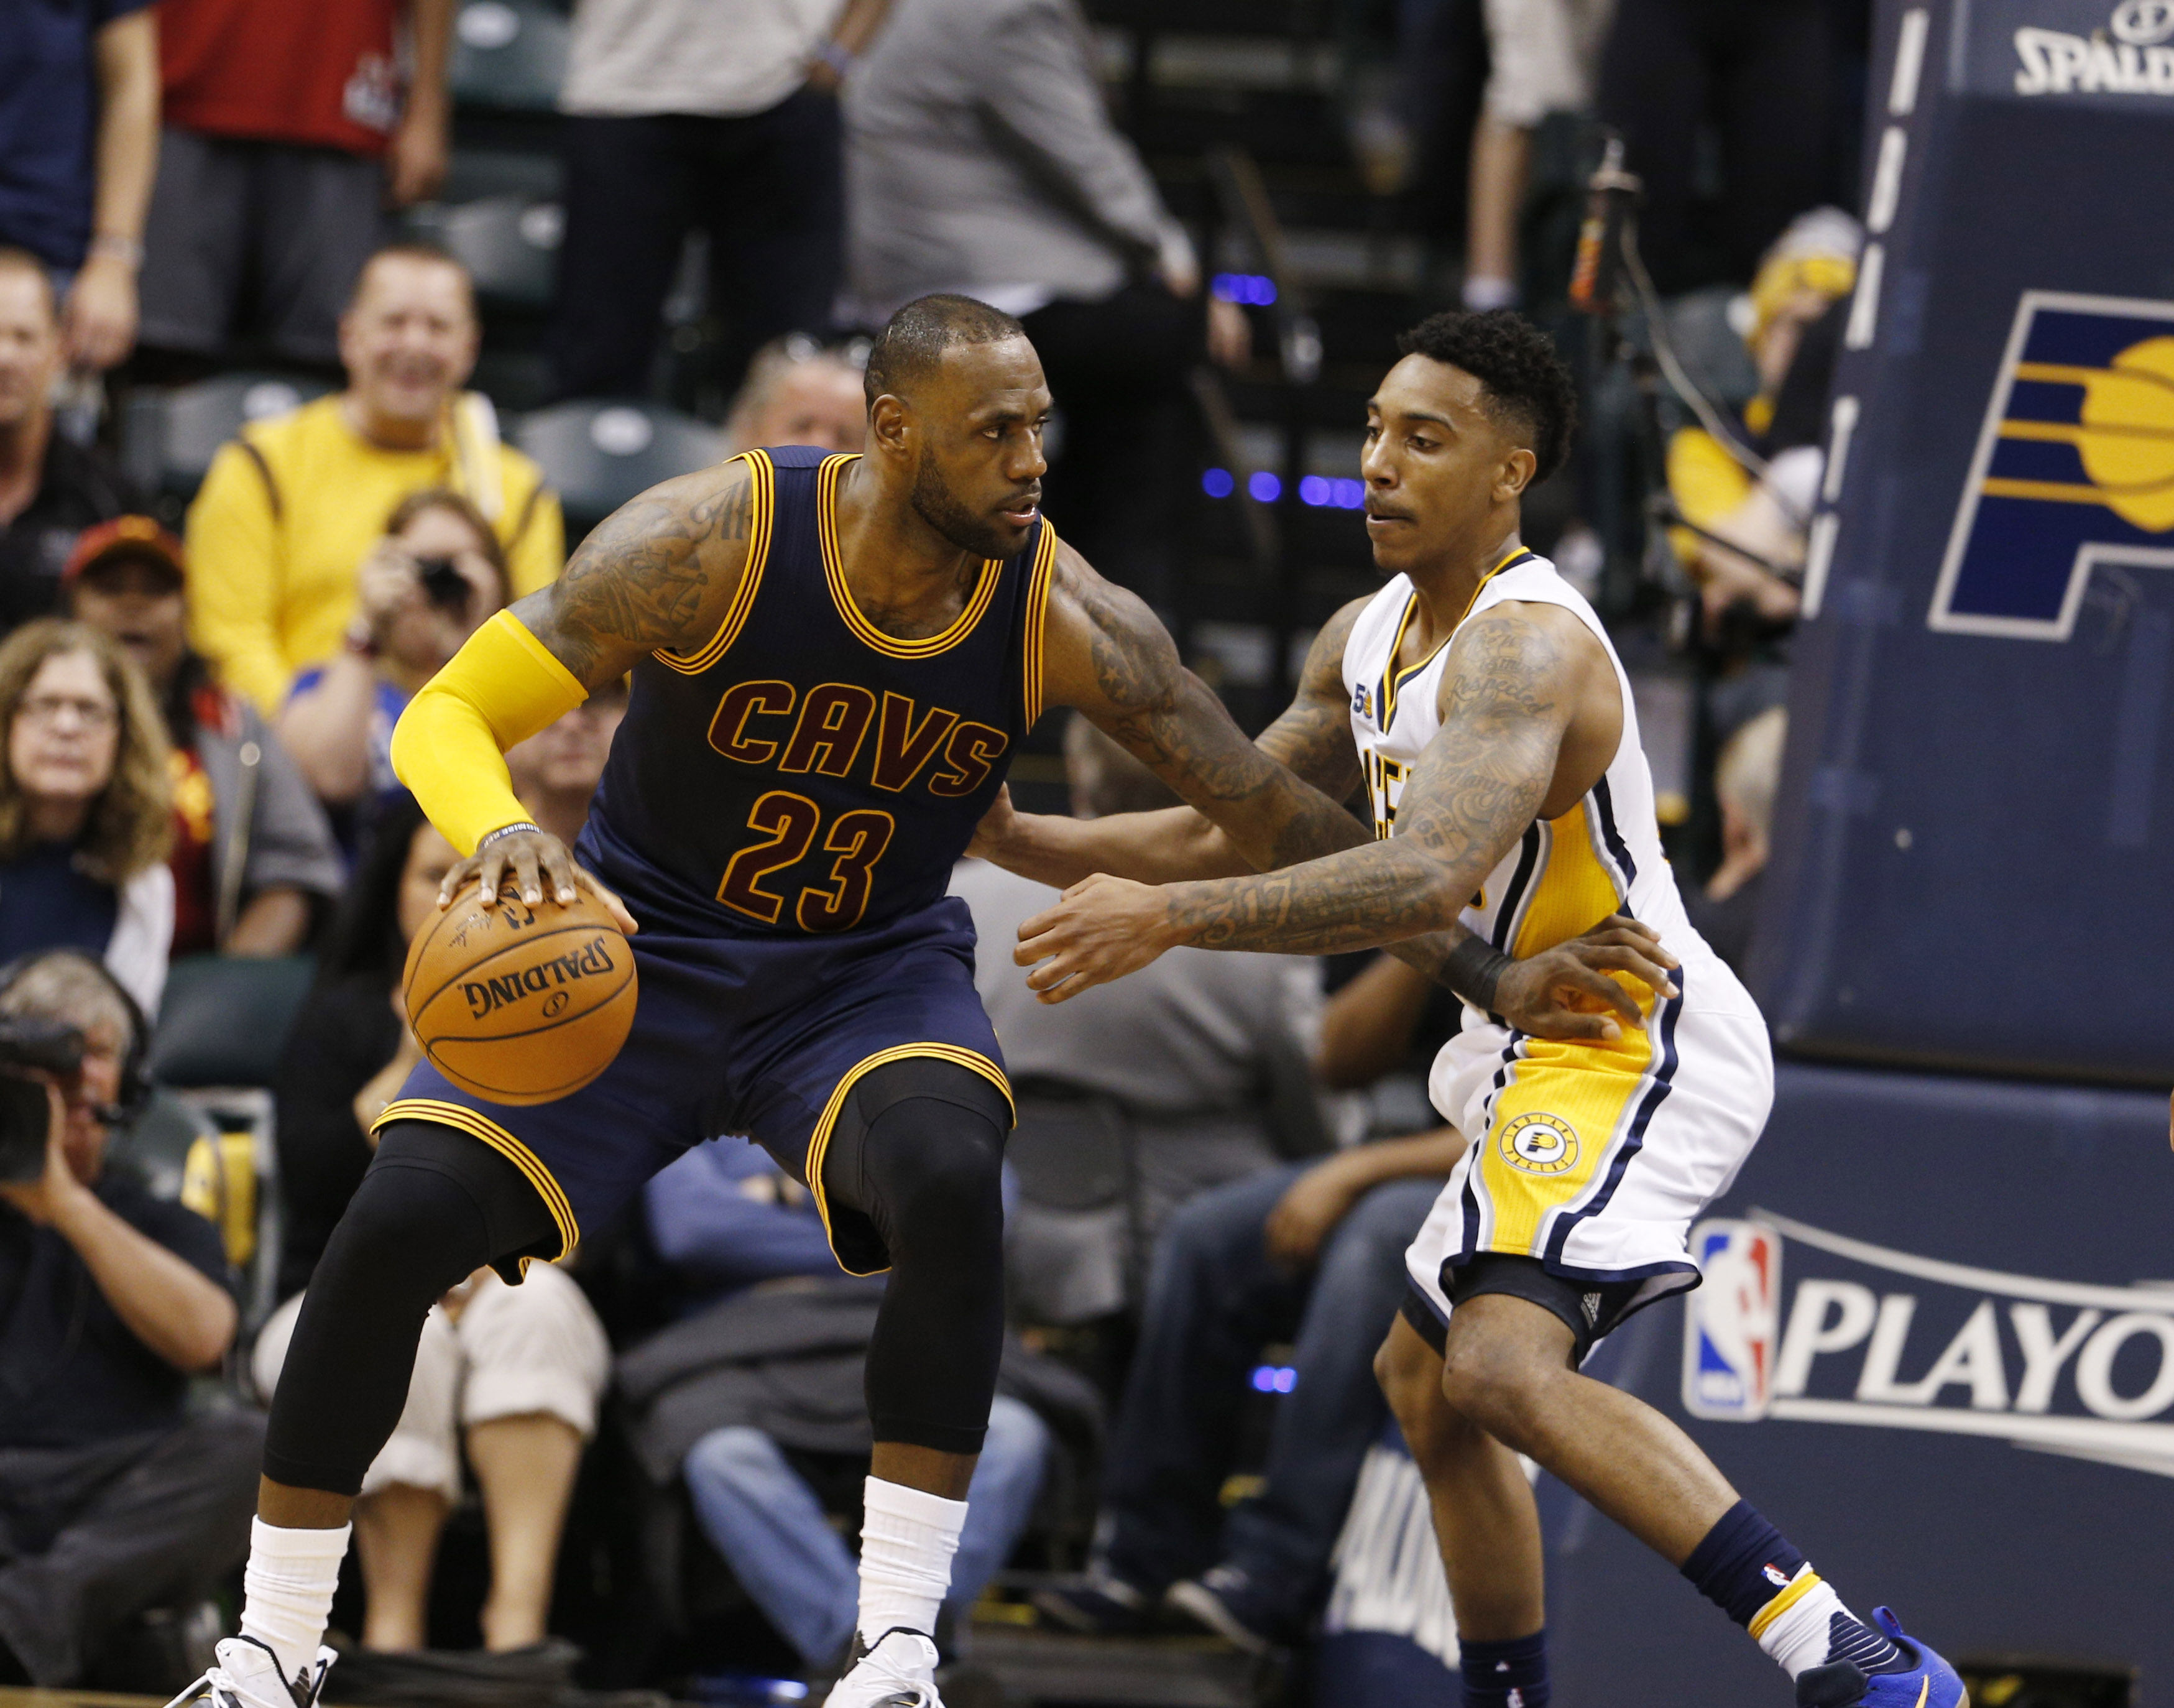 10027713-nba-playoffs-cleveland-cavaliers-at-indiana-pacers